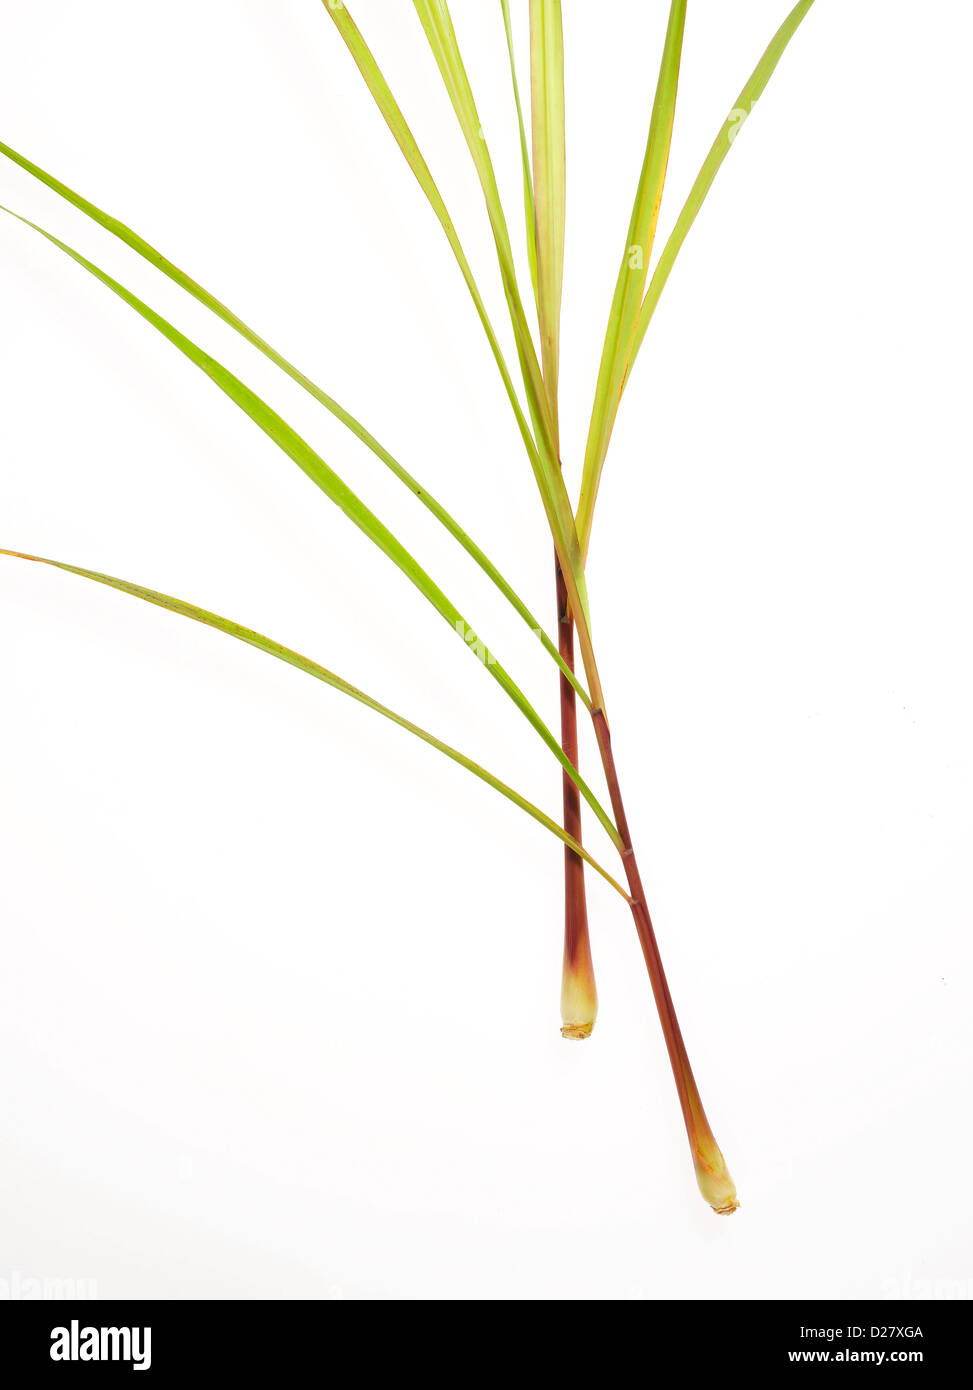 Two Lemongrass Stems on White Background - Stock Image